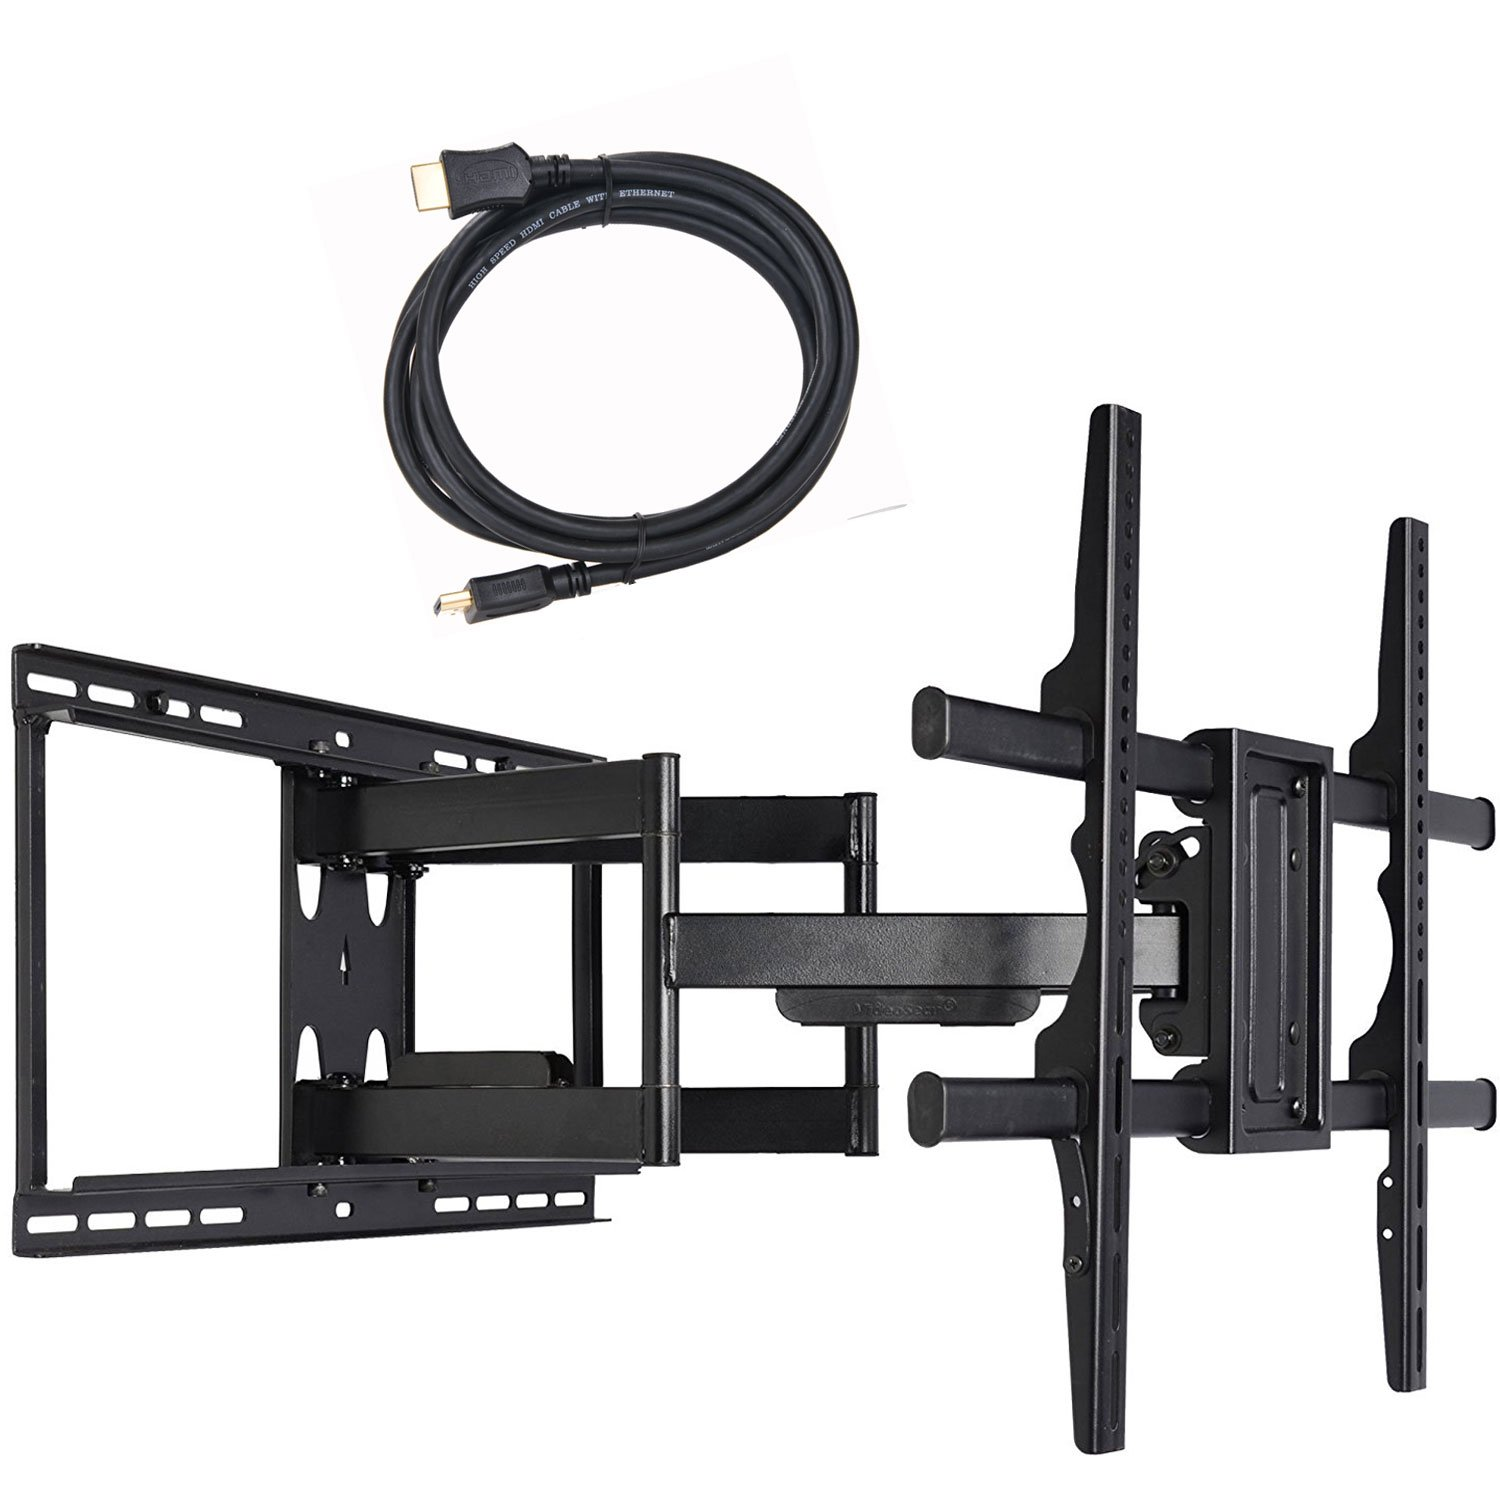 VideoSecu 24 inch Extension Full Motion Swivel Articulating TV Wall Mount Bracket for Most 40''-90'' LED LCD OLED Plasma Flat Screen TV with VESA 684x400,600x400,400x400,200x200mm MW480B BCL